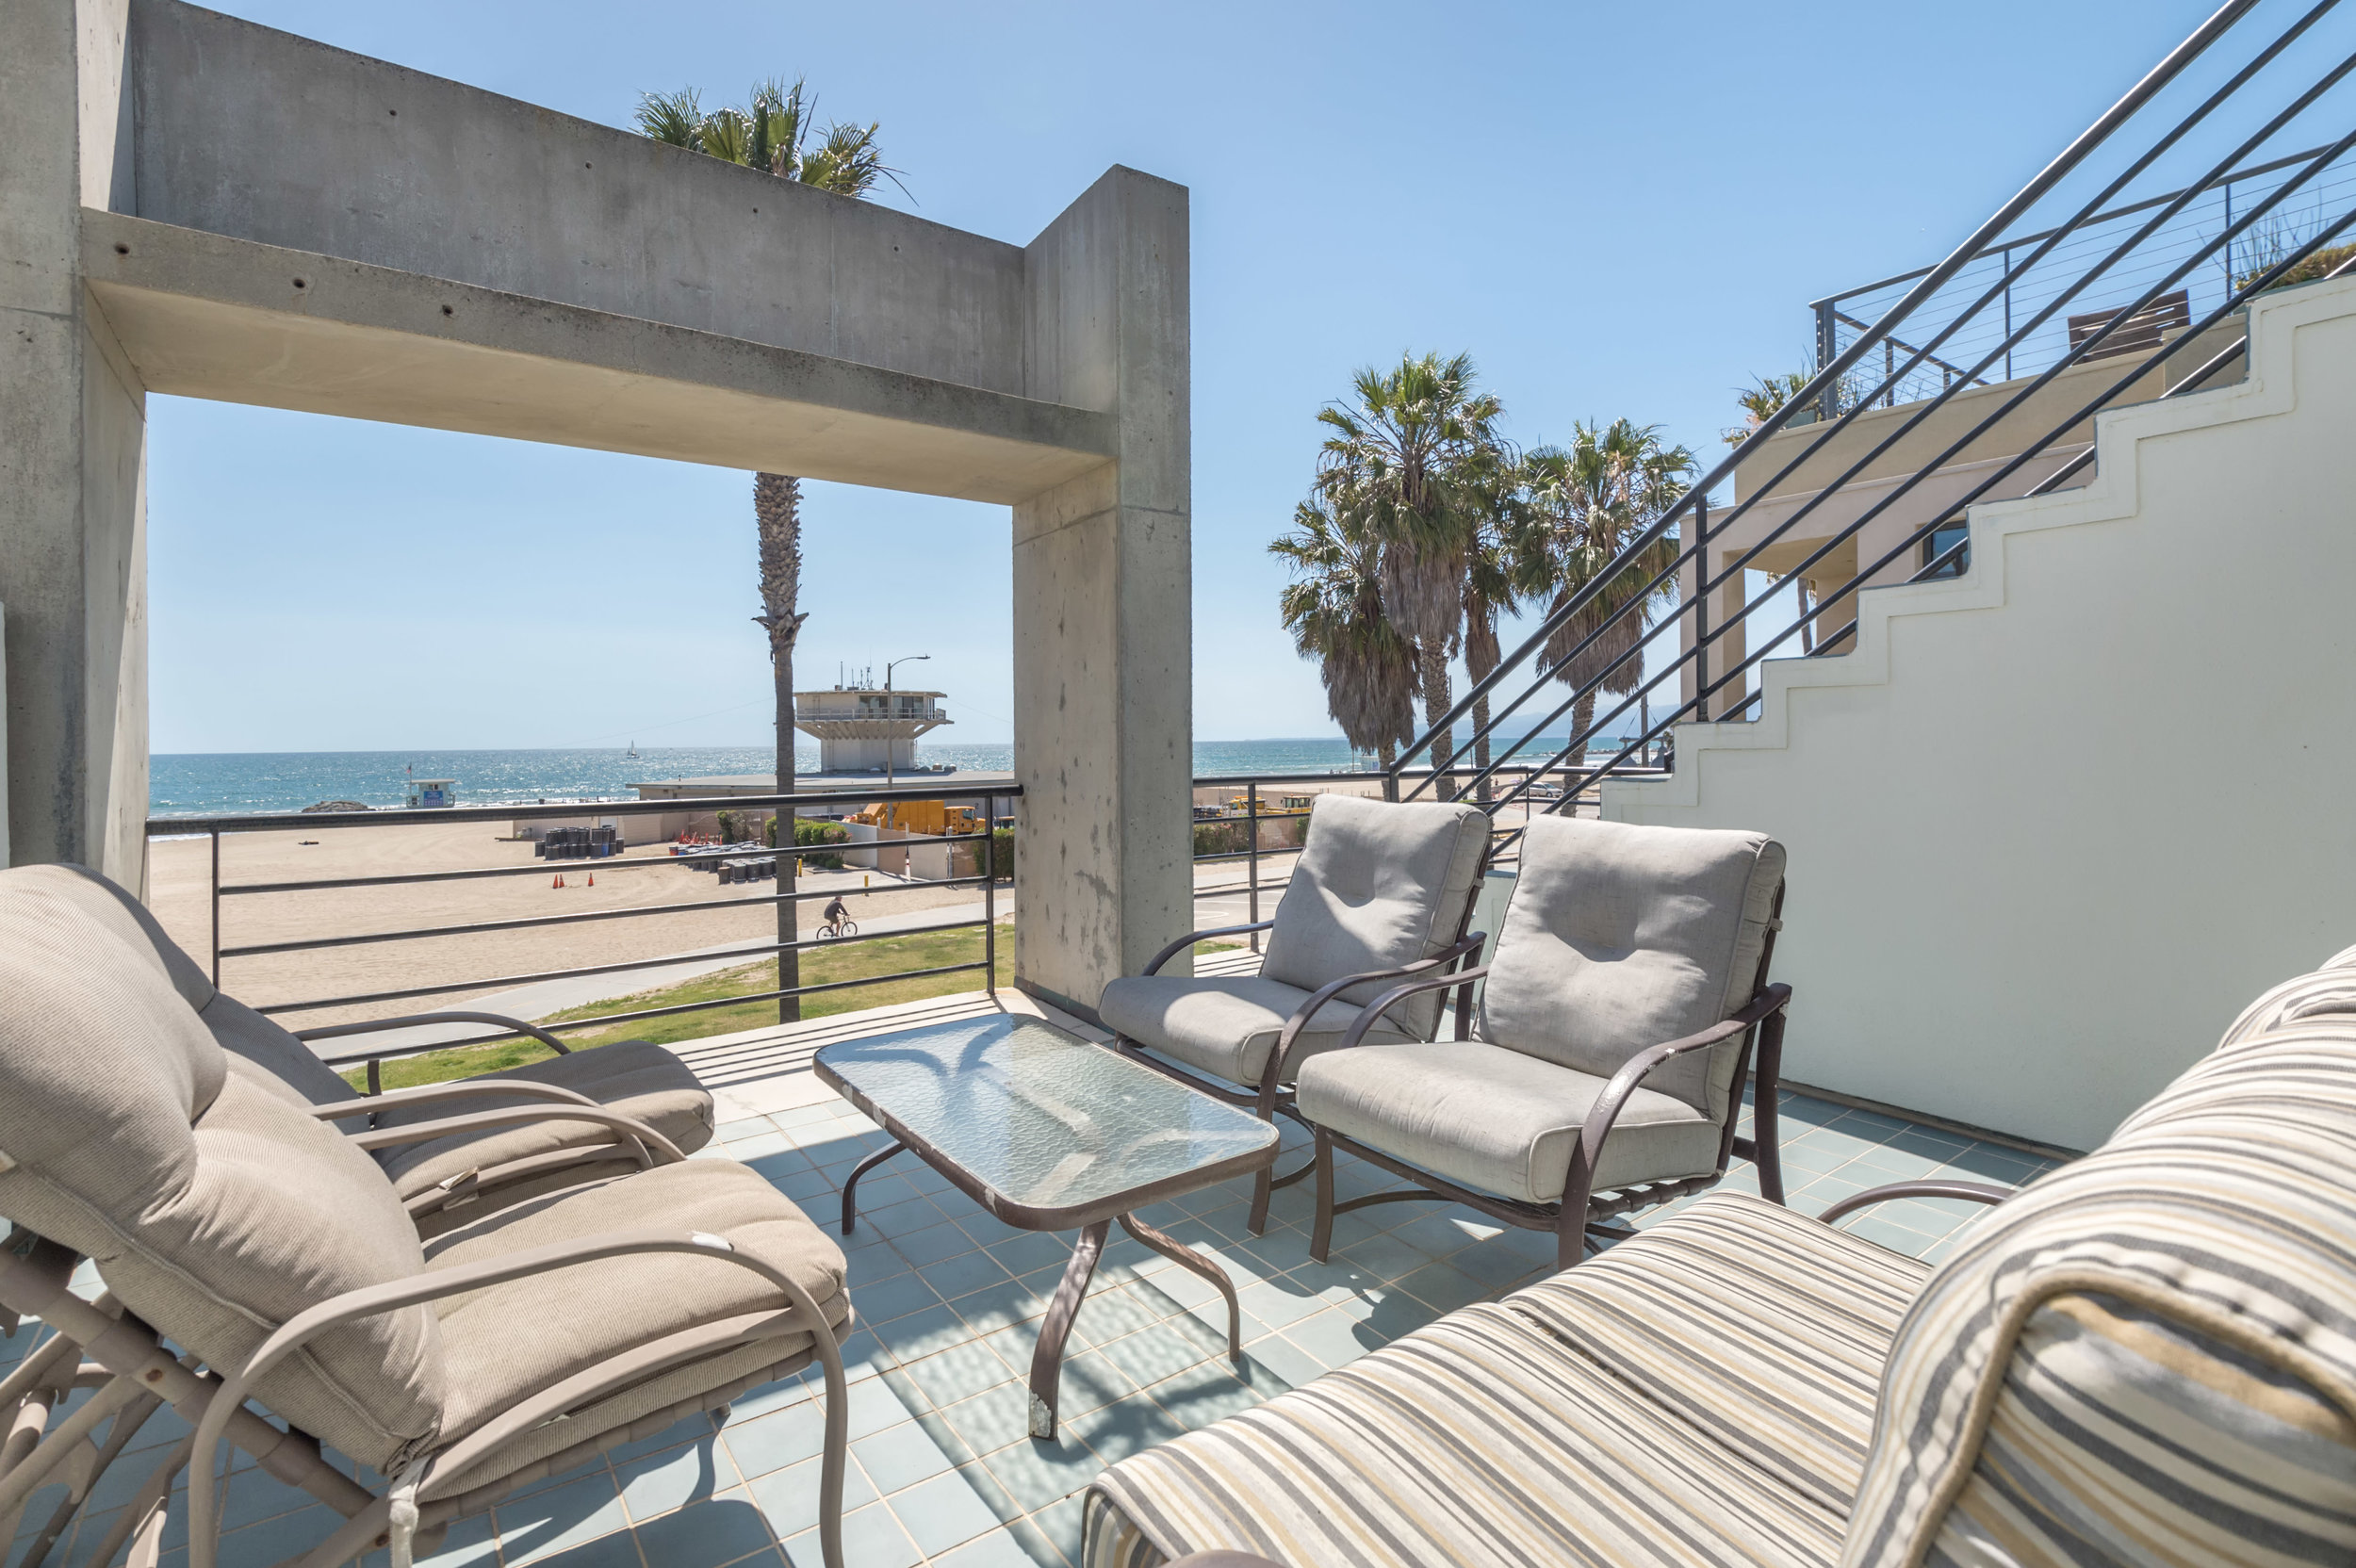 019 Master Balcony Ocean Front Walk Venice For Sale Lease The Malibu Life Team Luxury Real Estate.jpg